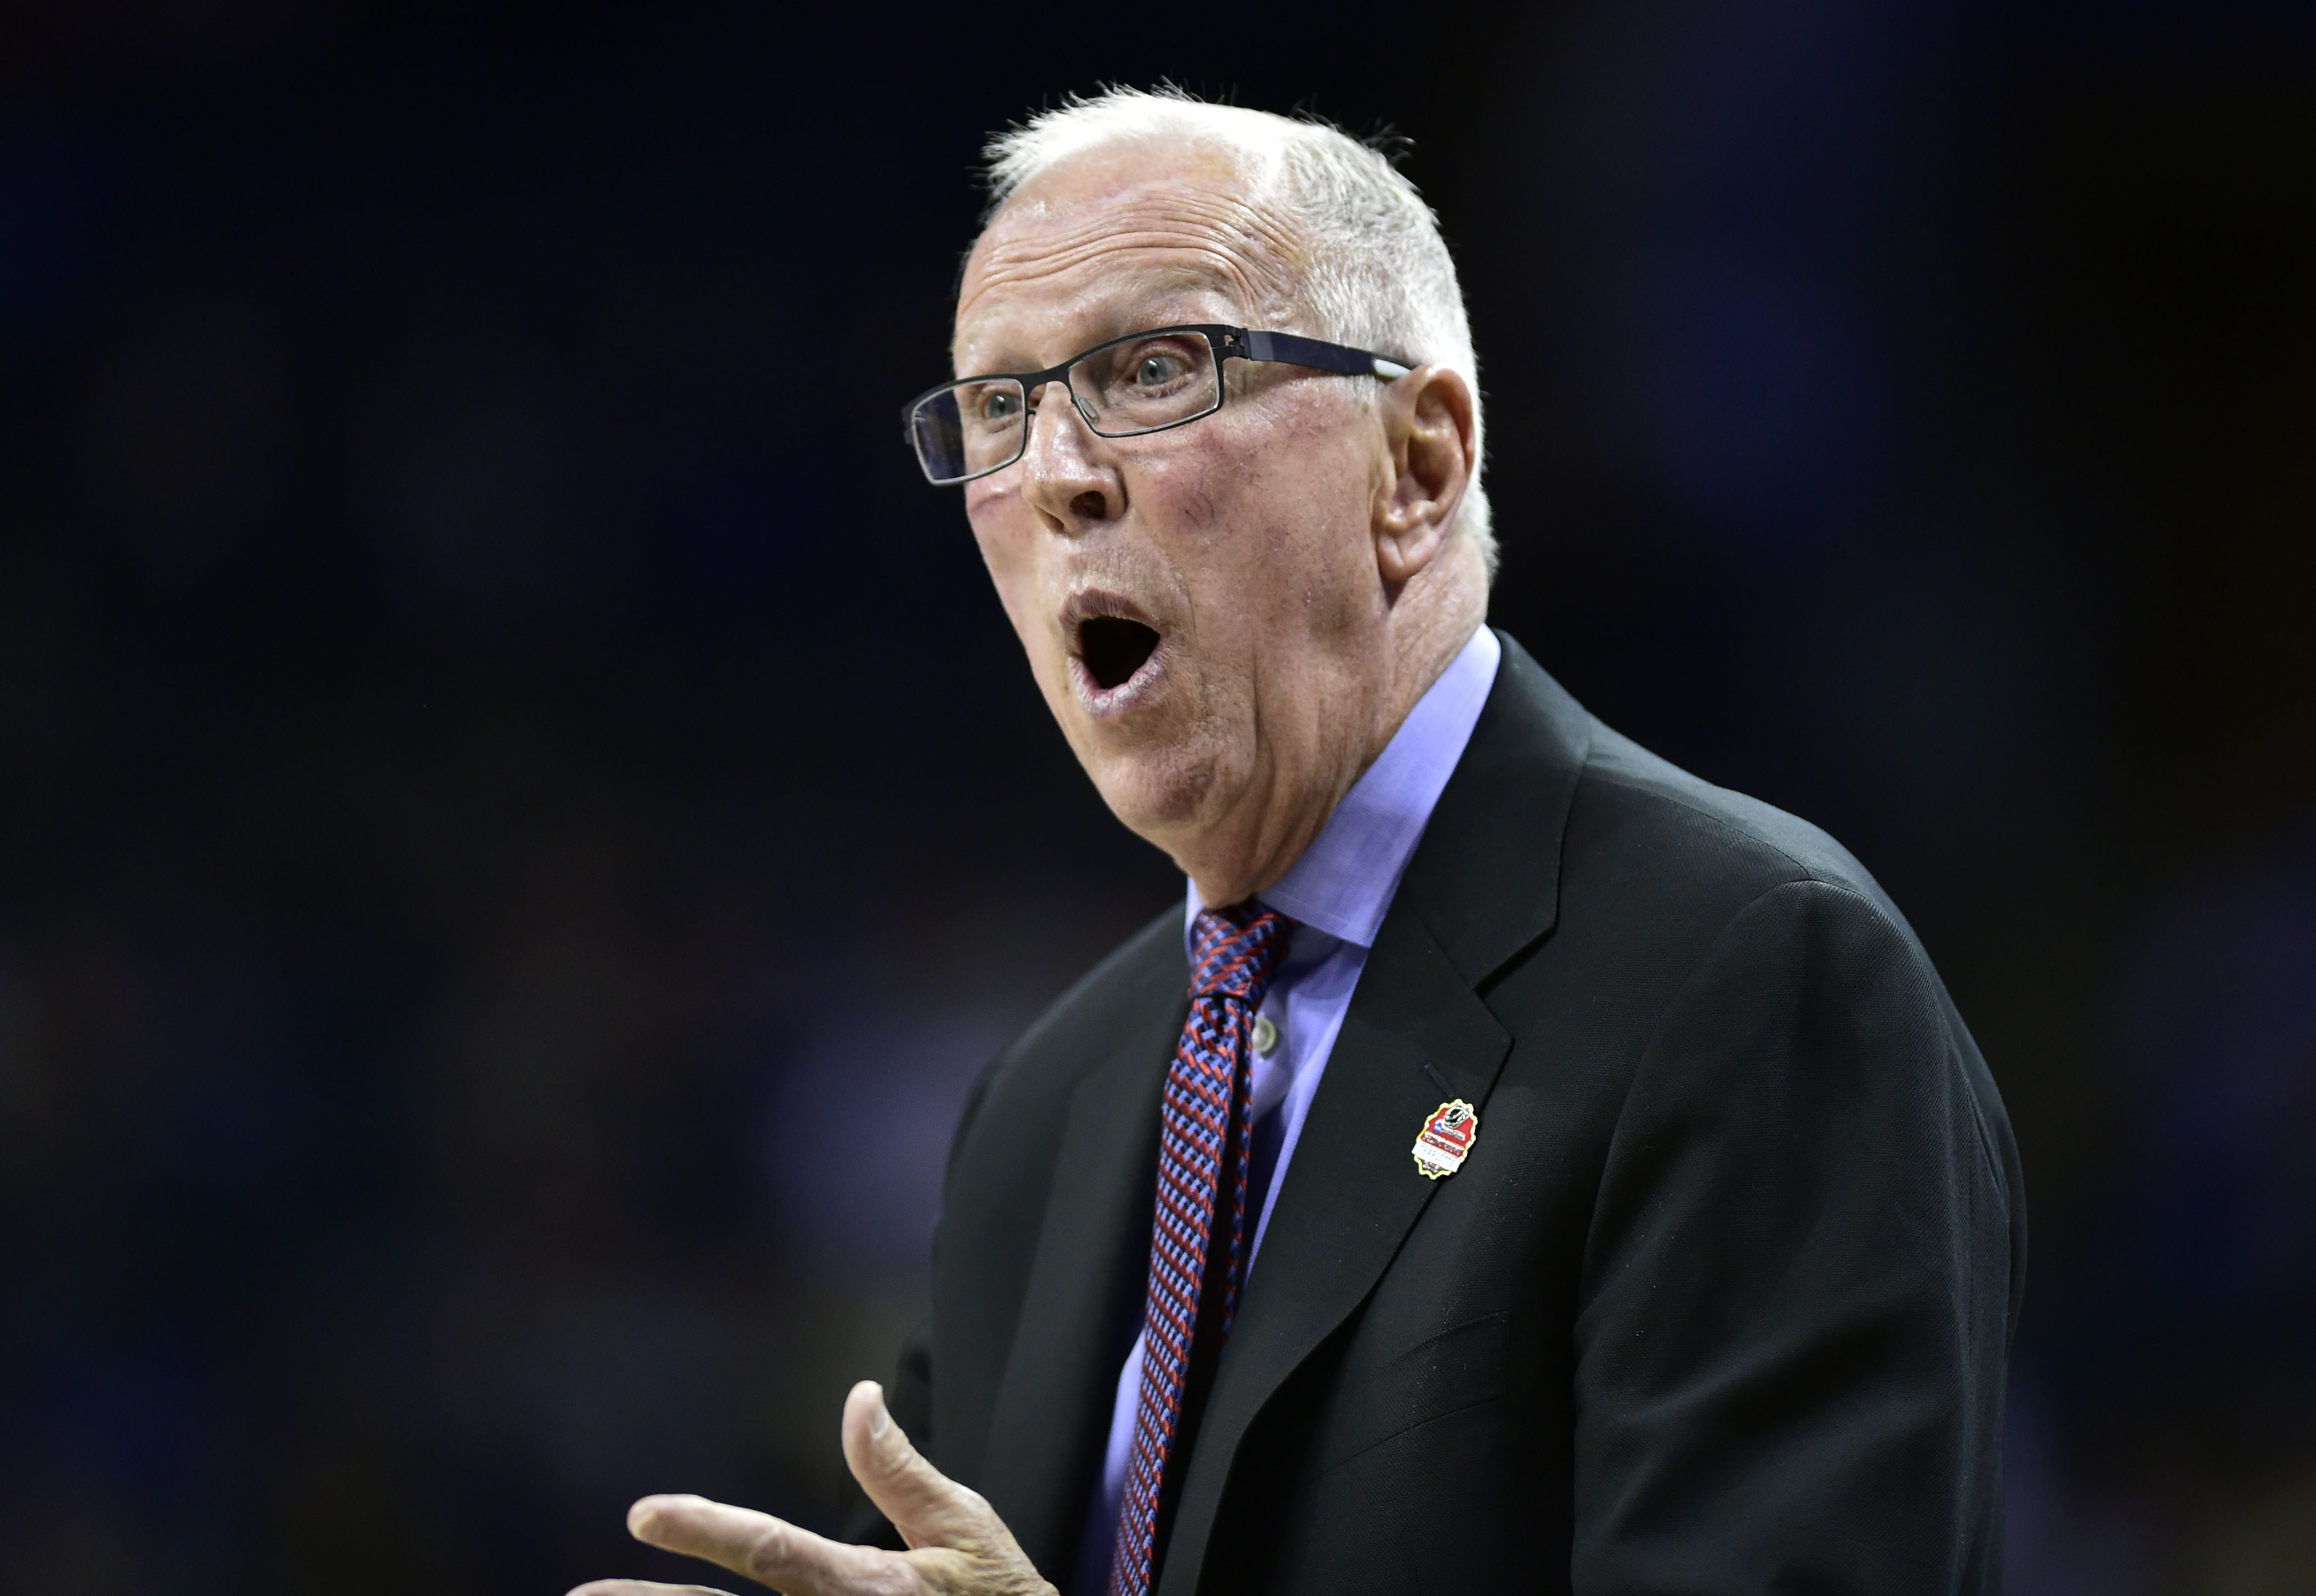 Steve Fisher during the NCAA tournament.